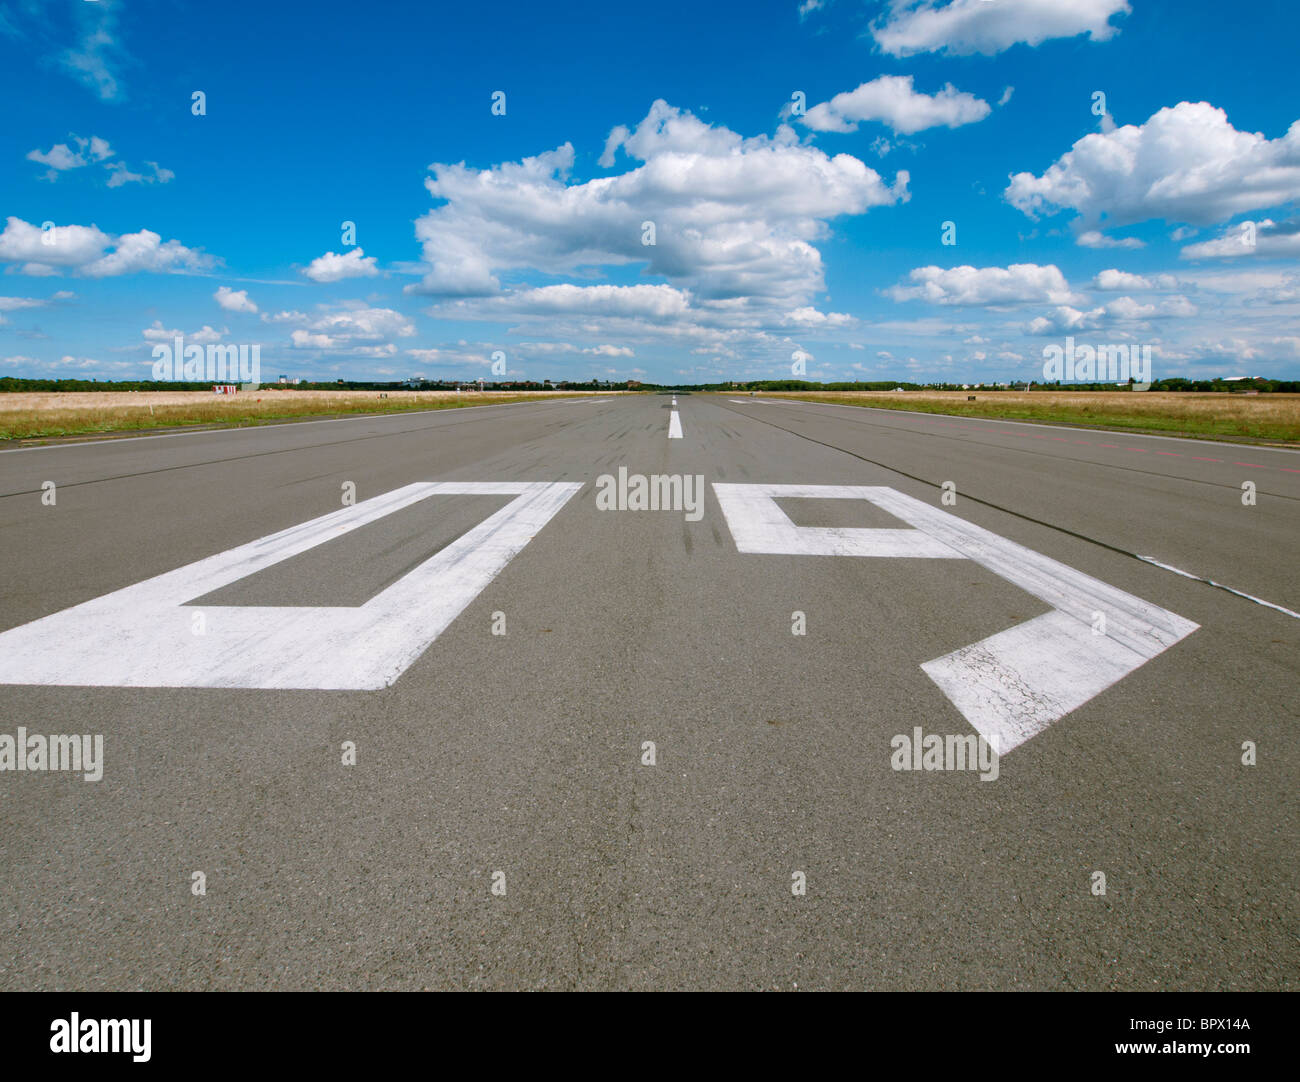 Disused  airport runway at new city public Tempelhofer Park on site of famous former Tempelhof Airport in Berlin - Stock Image